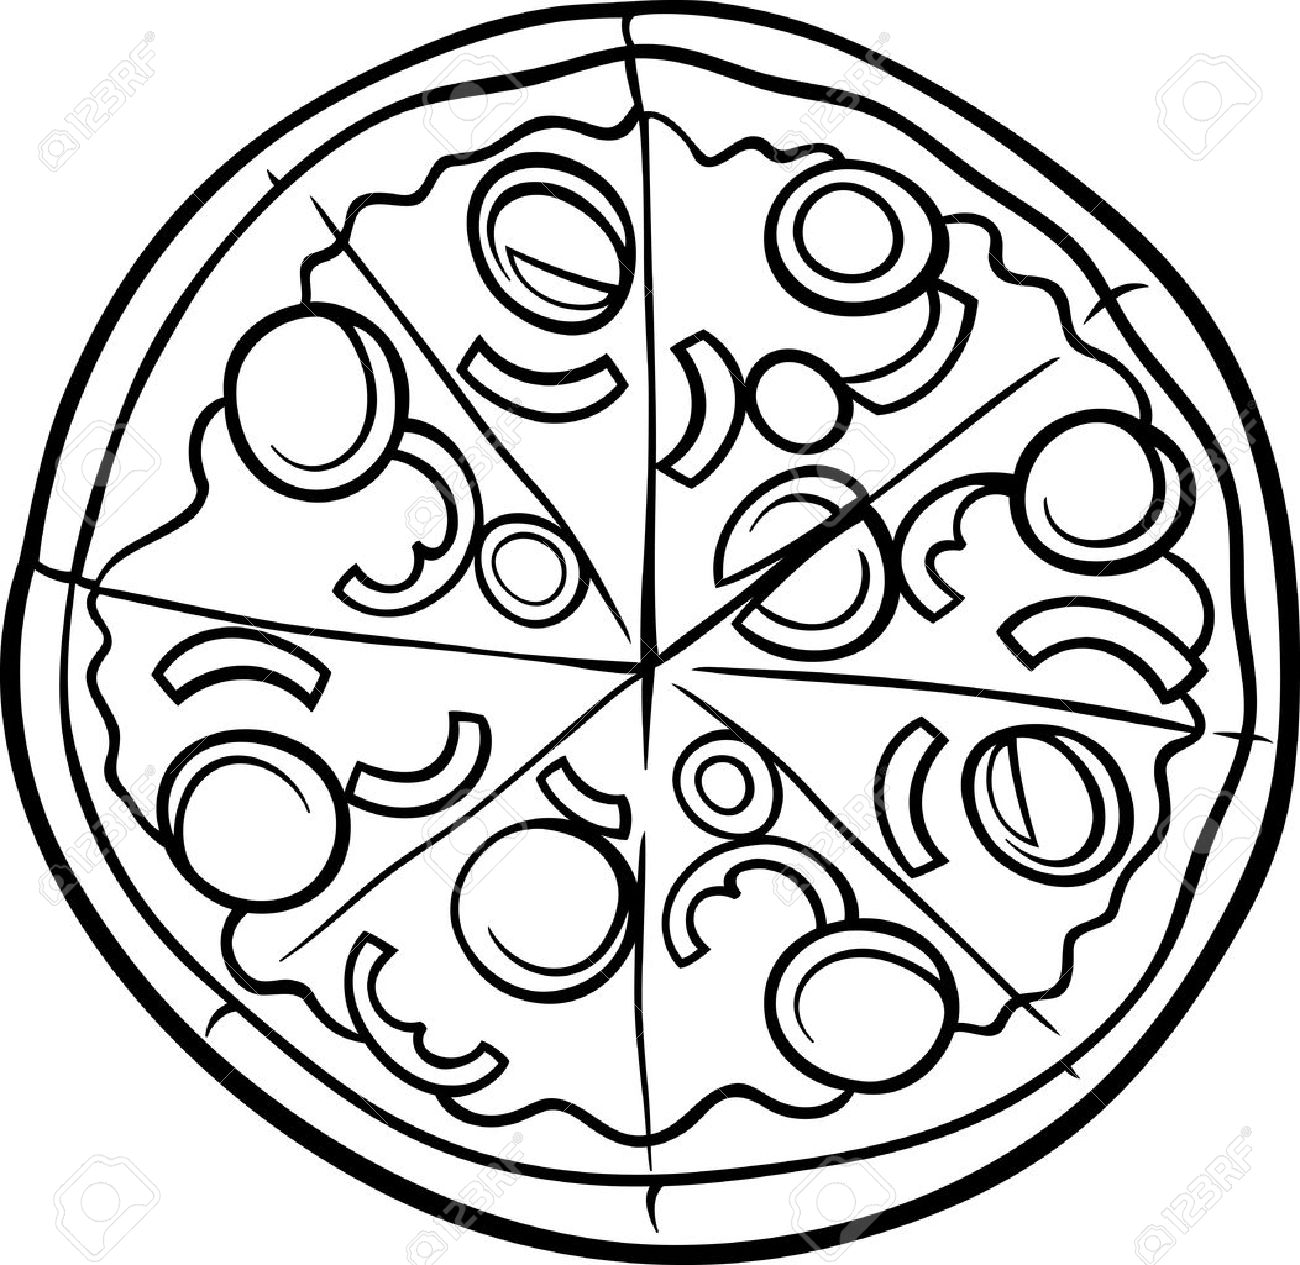 Black and white cartoon illustration of italian pizza food object for coloring book stock vector